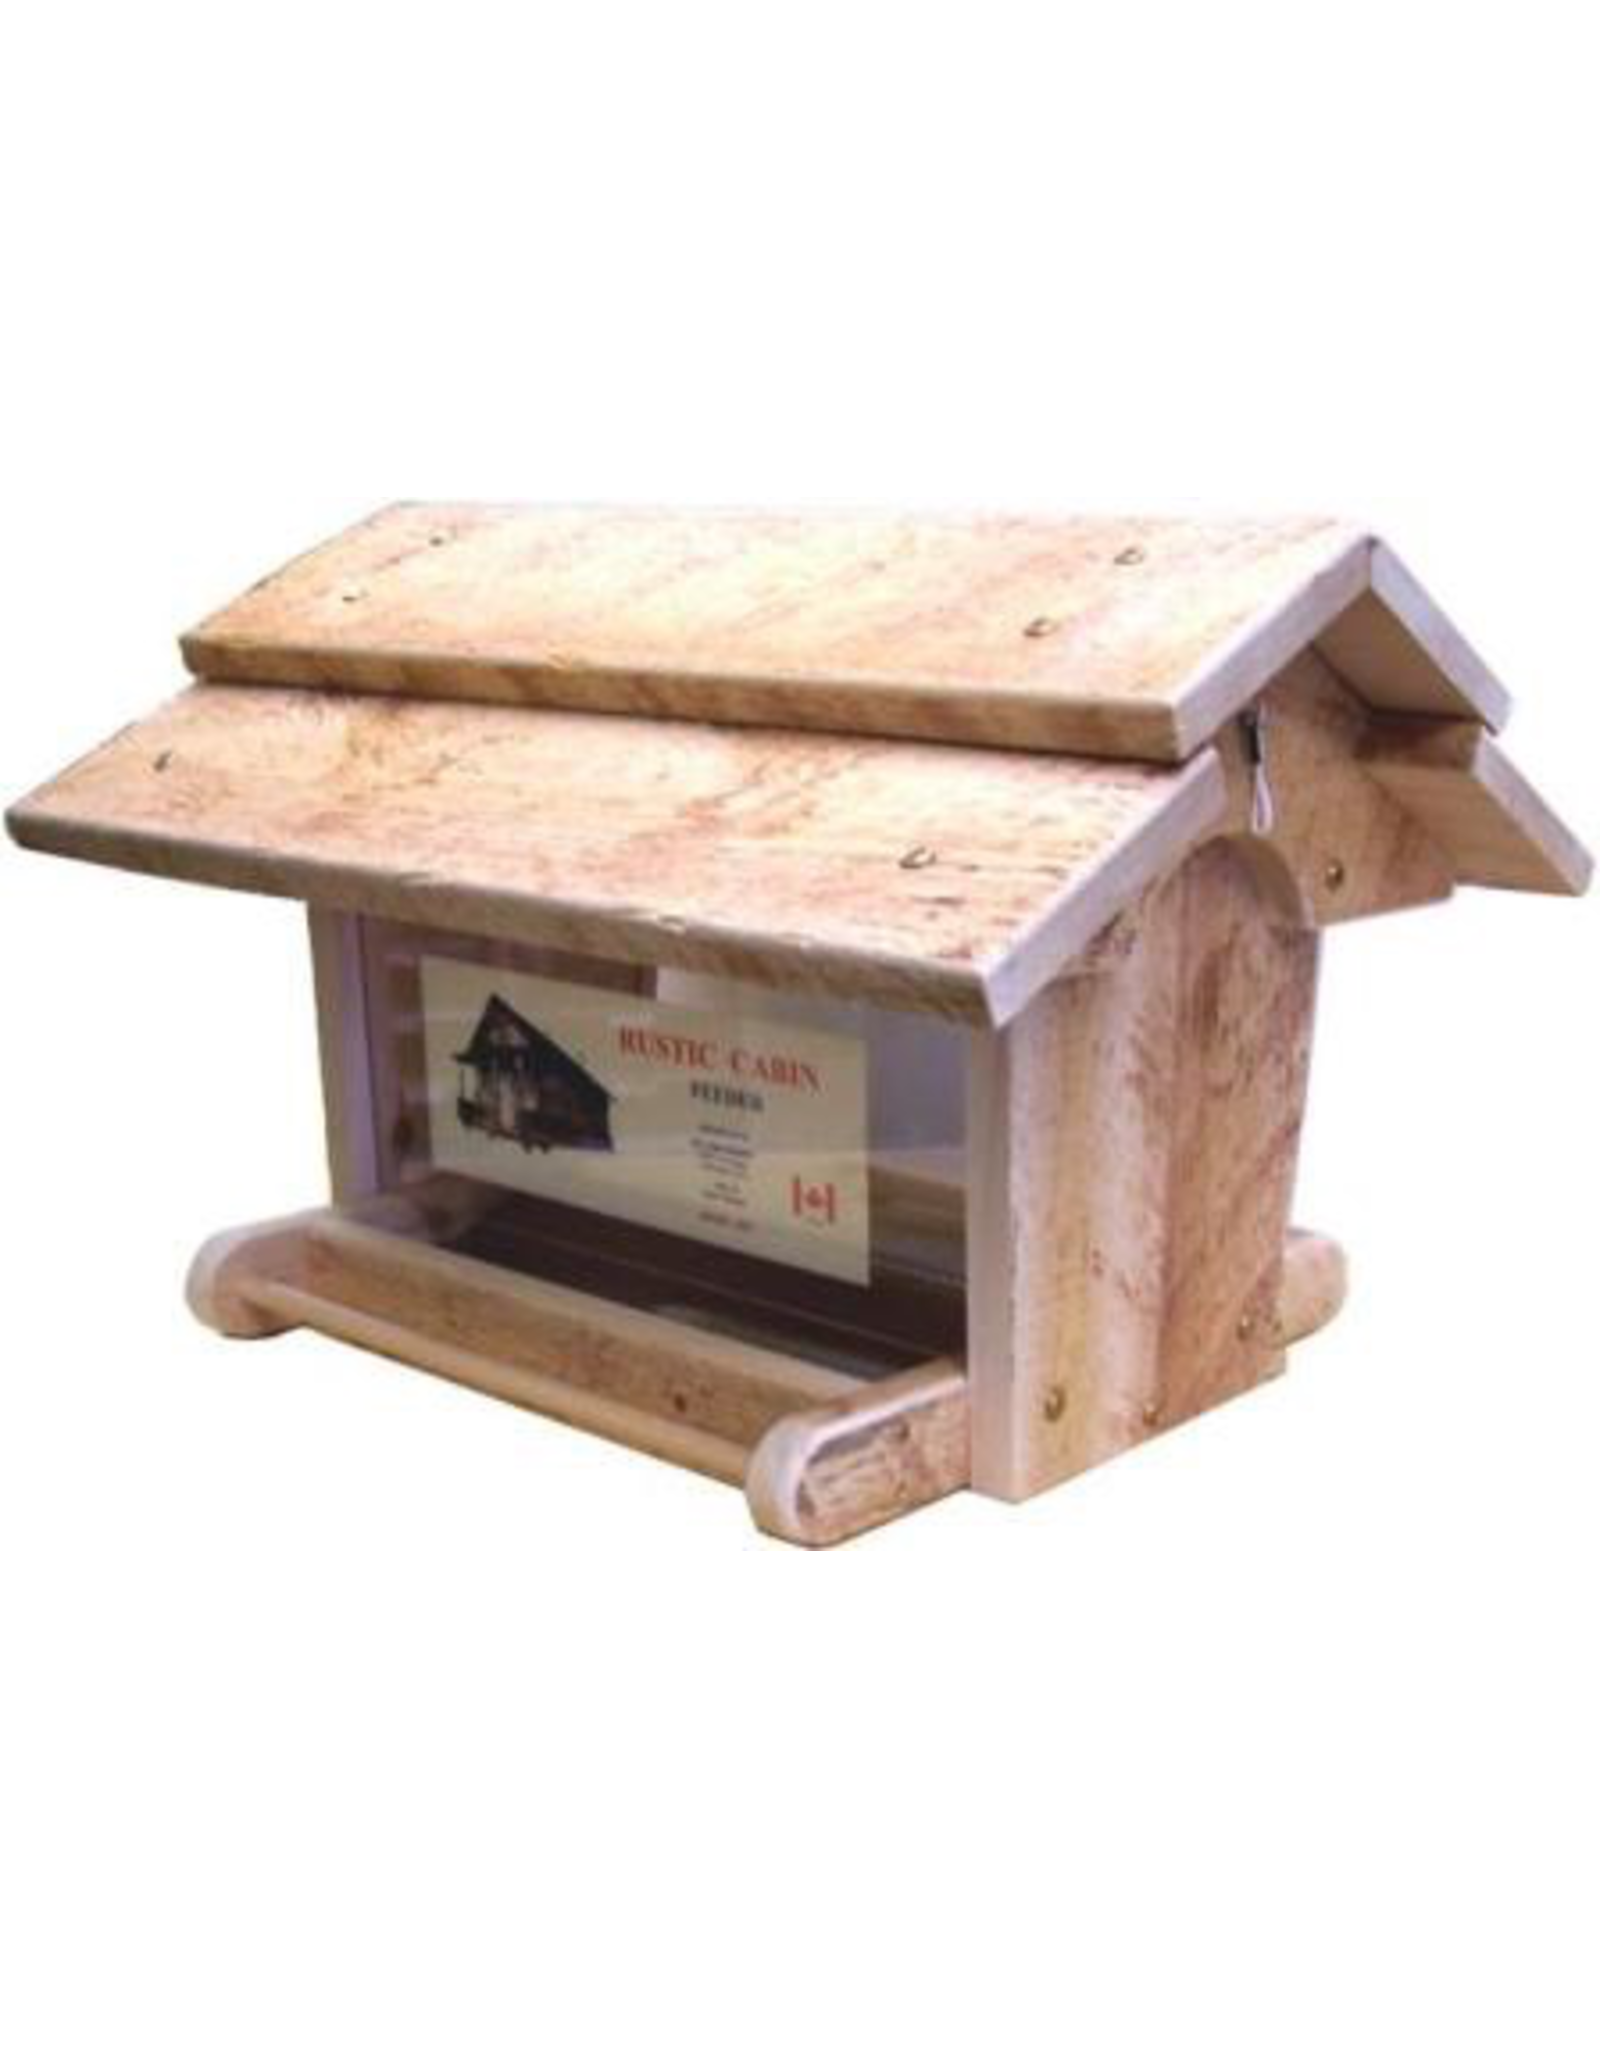 PYP Designs PYPRCLarge Rustic Cabin Made in Canada.